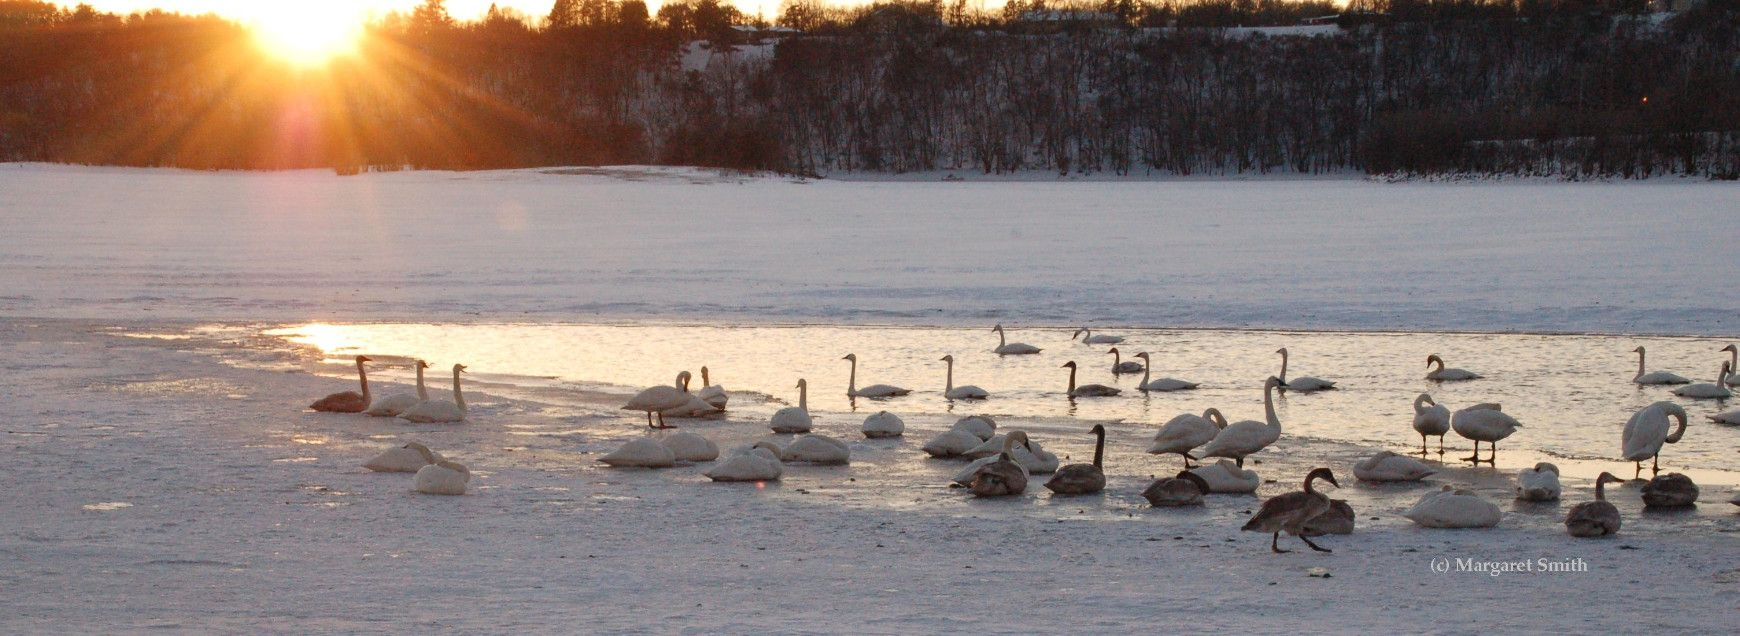 2019 The Trumpeter Swan Society News and Notes Archive_ swans on river at sunset, Margaret Smith photo